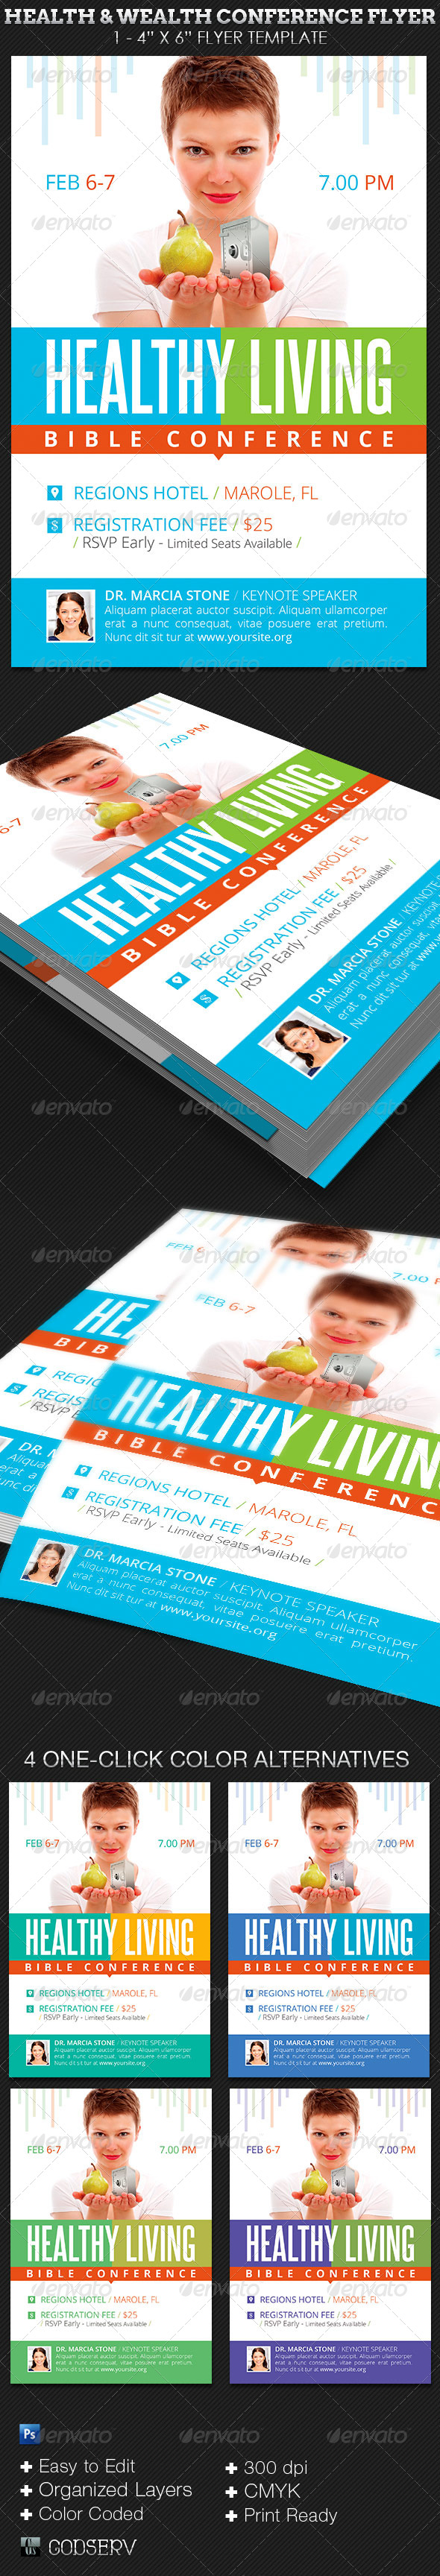 Health Wealth Conference Flyer Template - Church Flyers